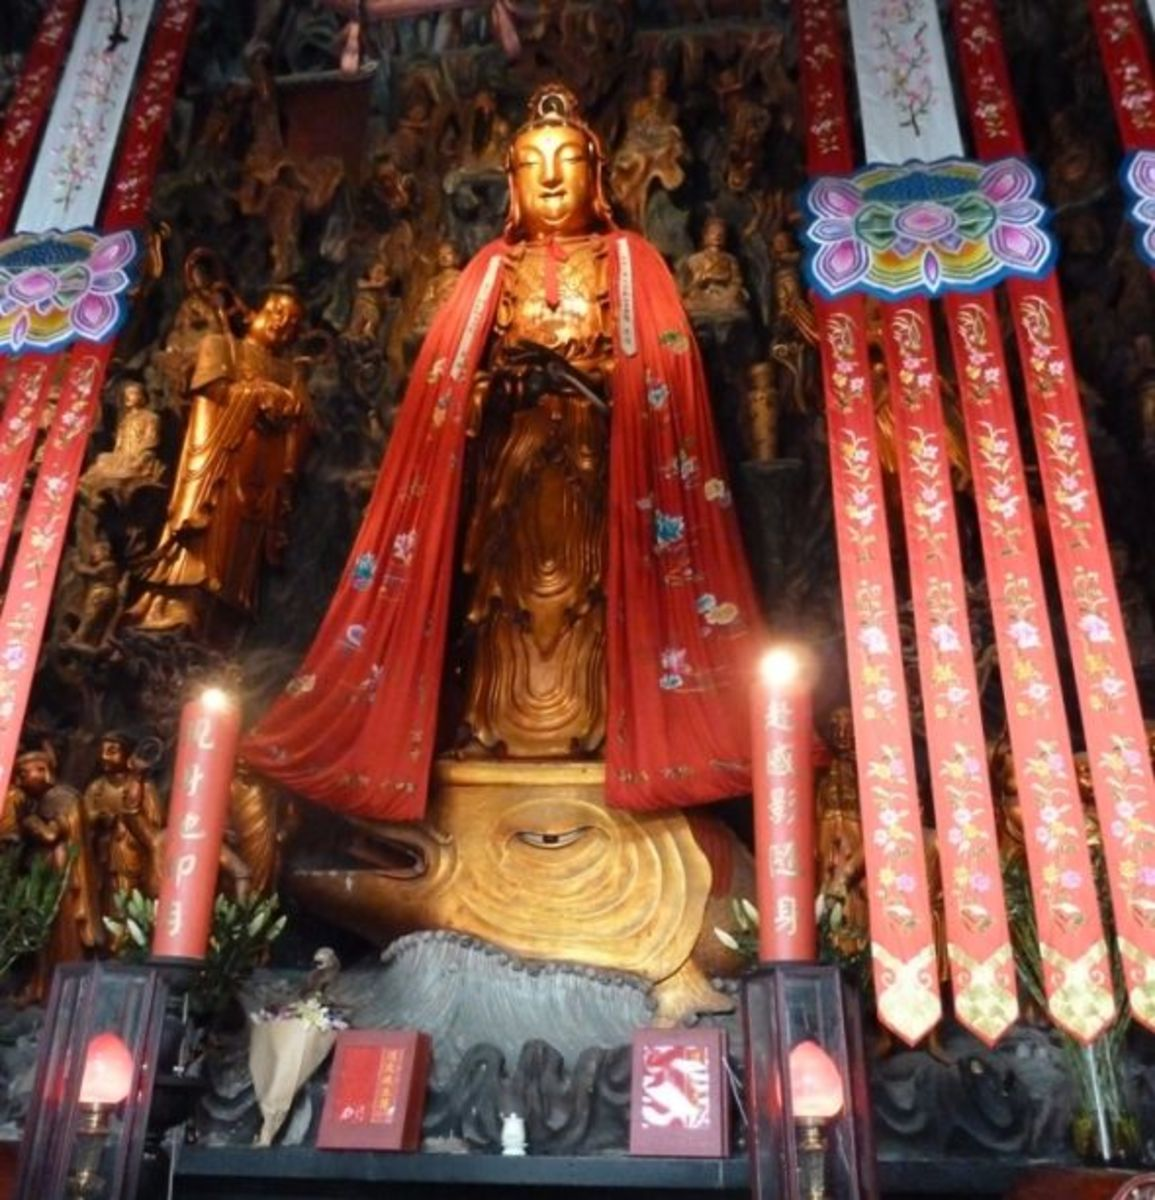 Guanyin Goddess of Mercy and Compassion Jade Buddha Temple Shanghai